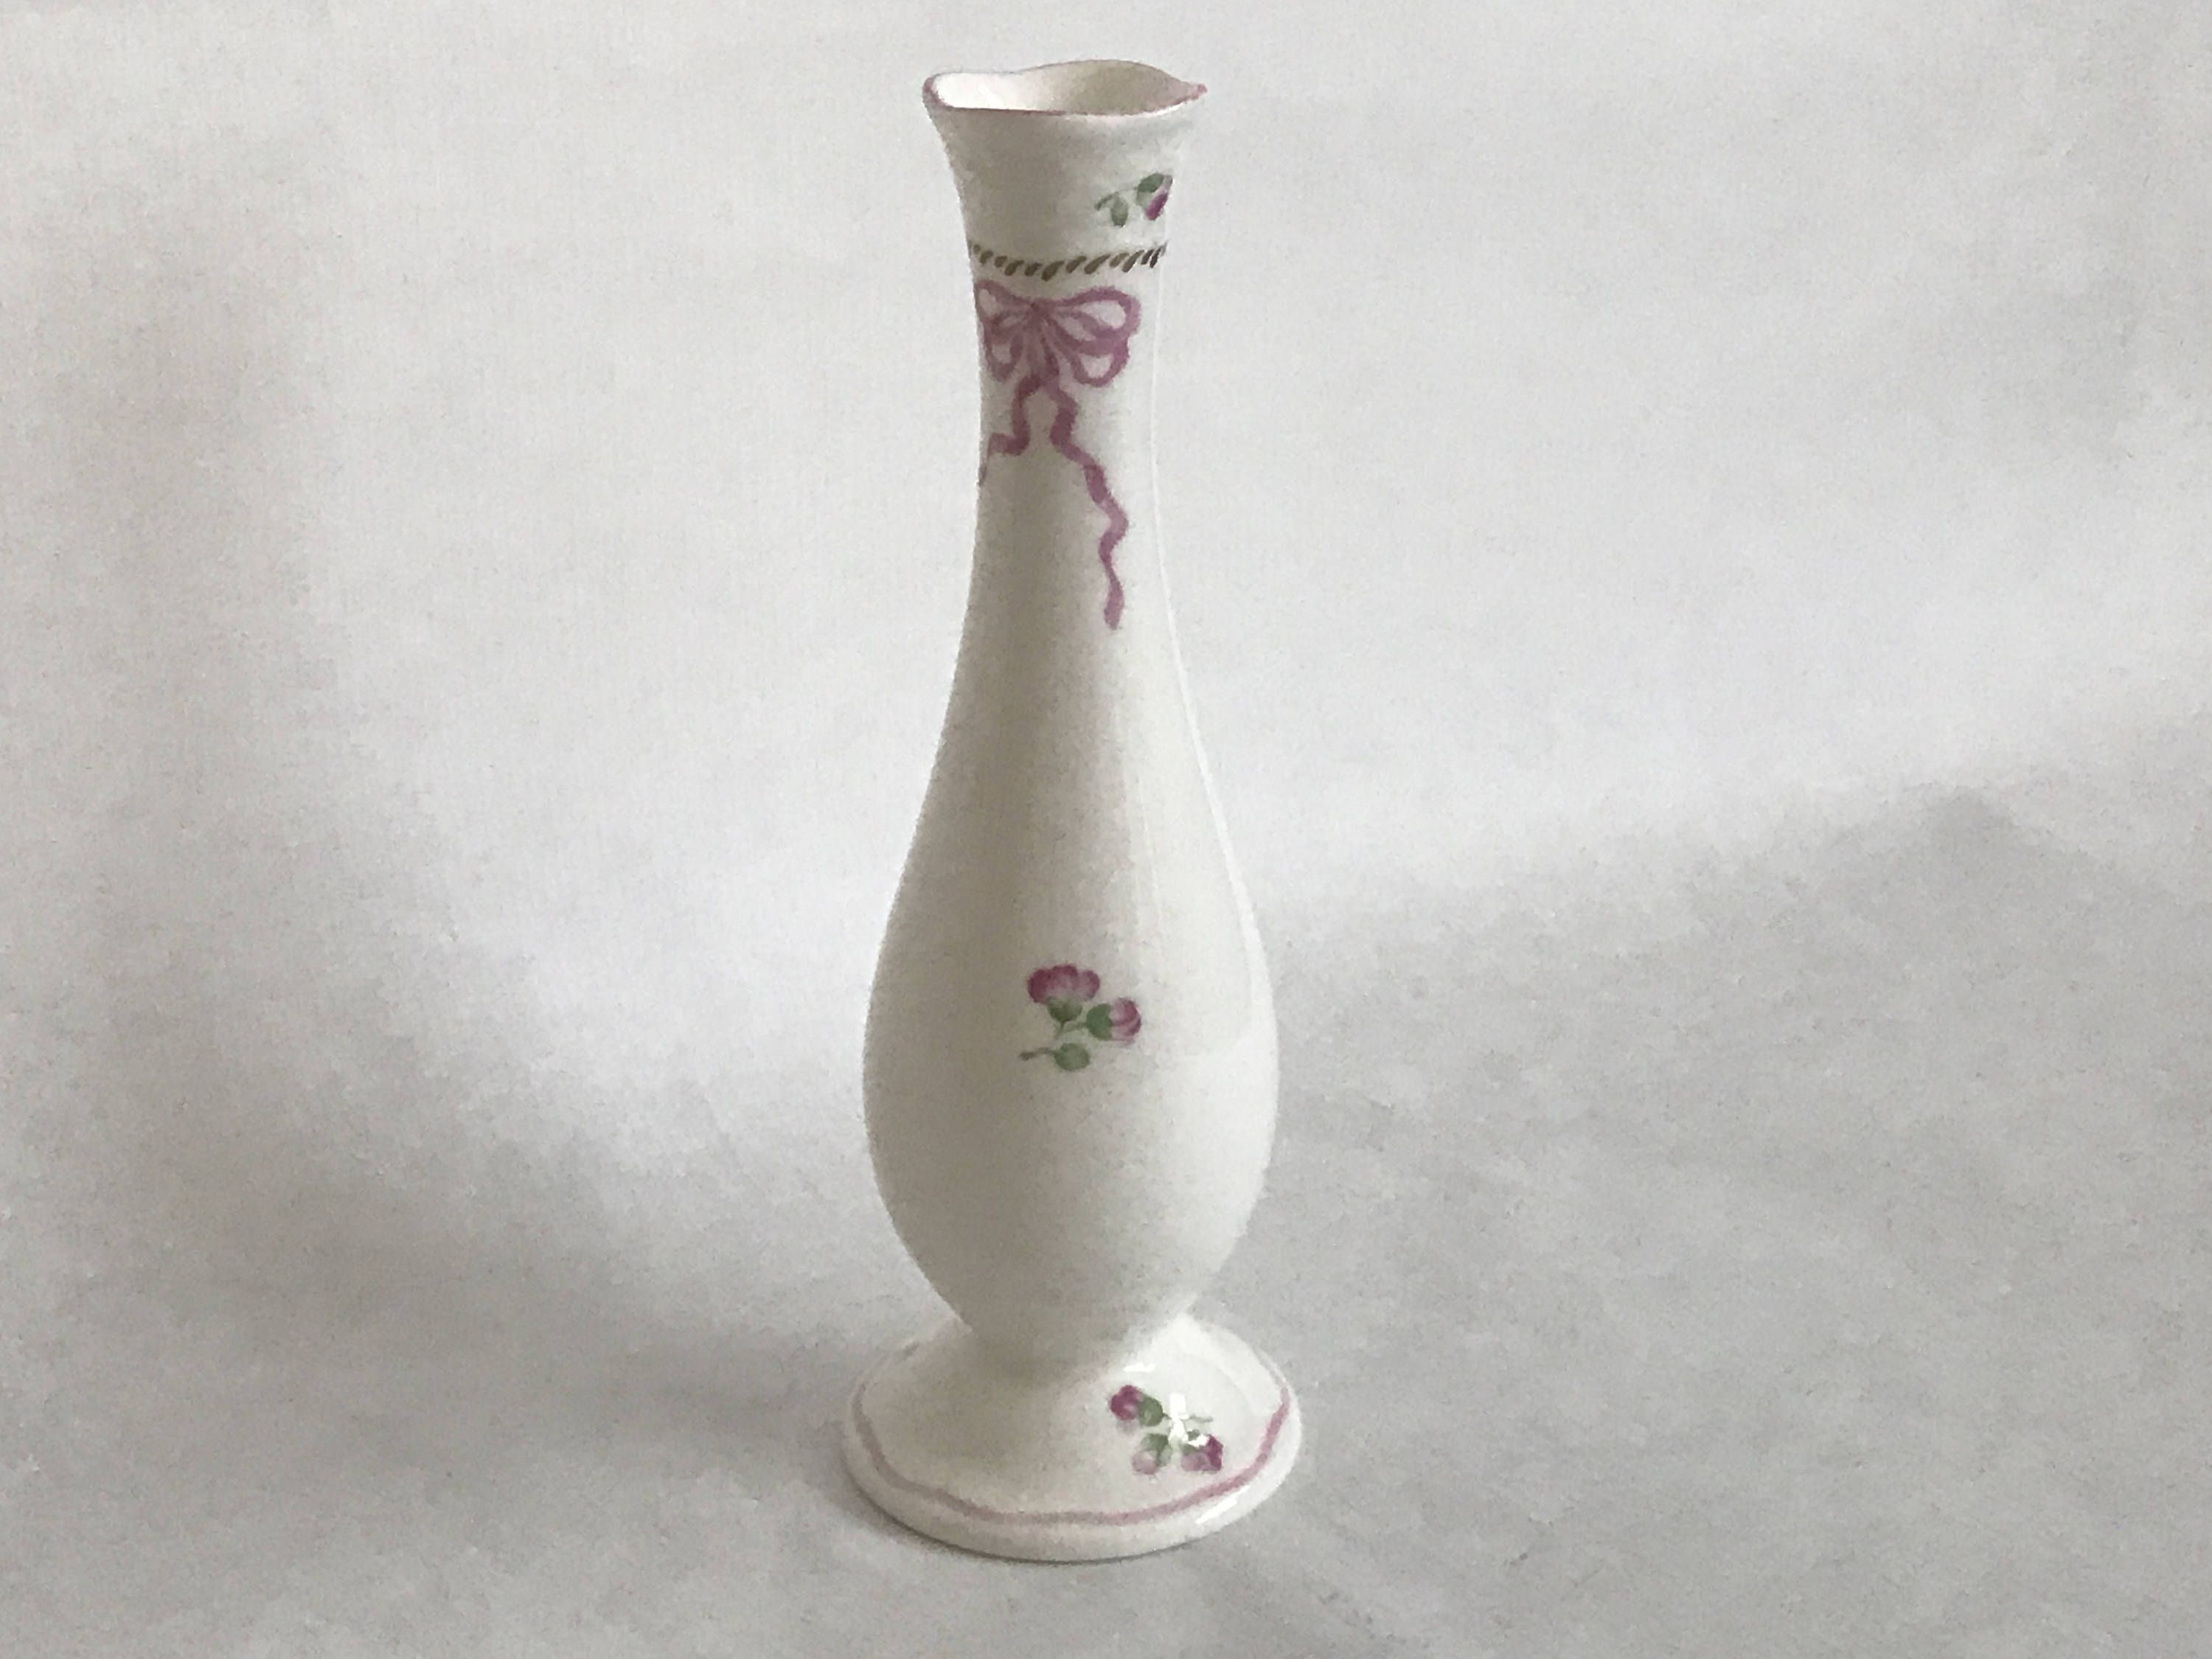 lenox small bud vase of lenox china bud vase vintage lenox white porcelain bud vase with in lenox china bud vase vintage lenox white porcelain bud vase with 24k pink trim